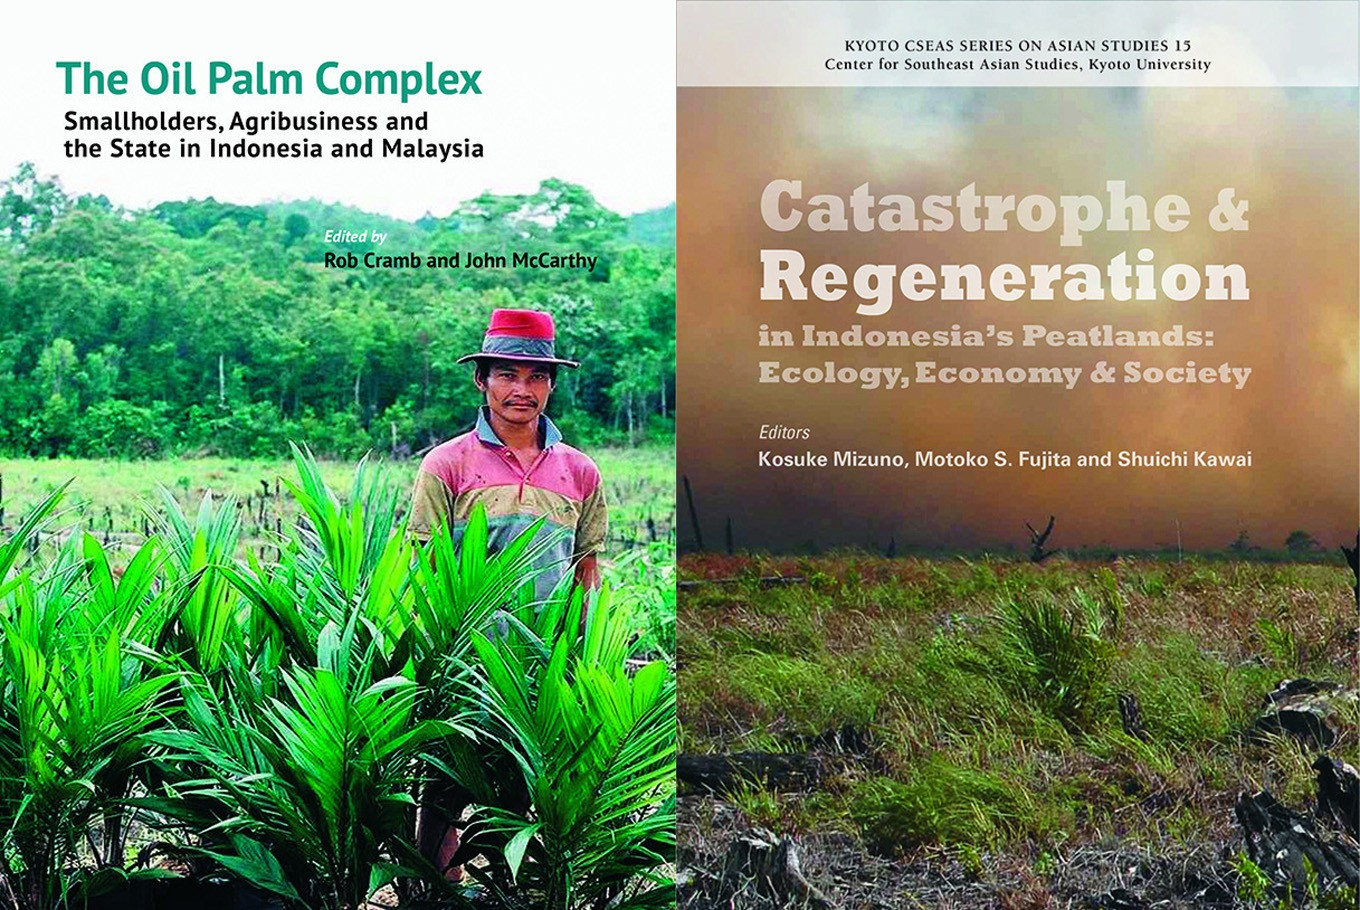 Book Review: The challenges behind Indonesia's agricultural matrix